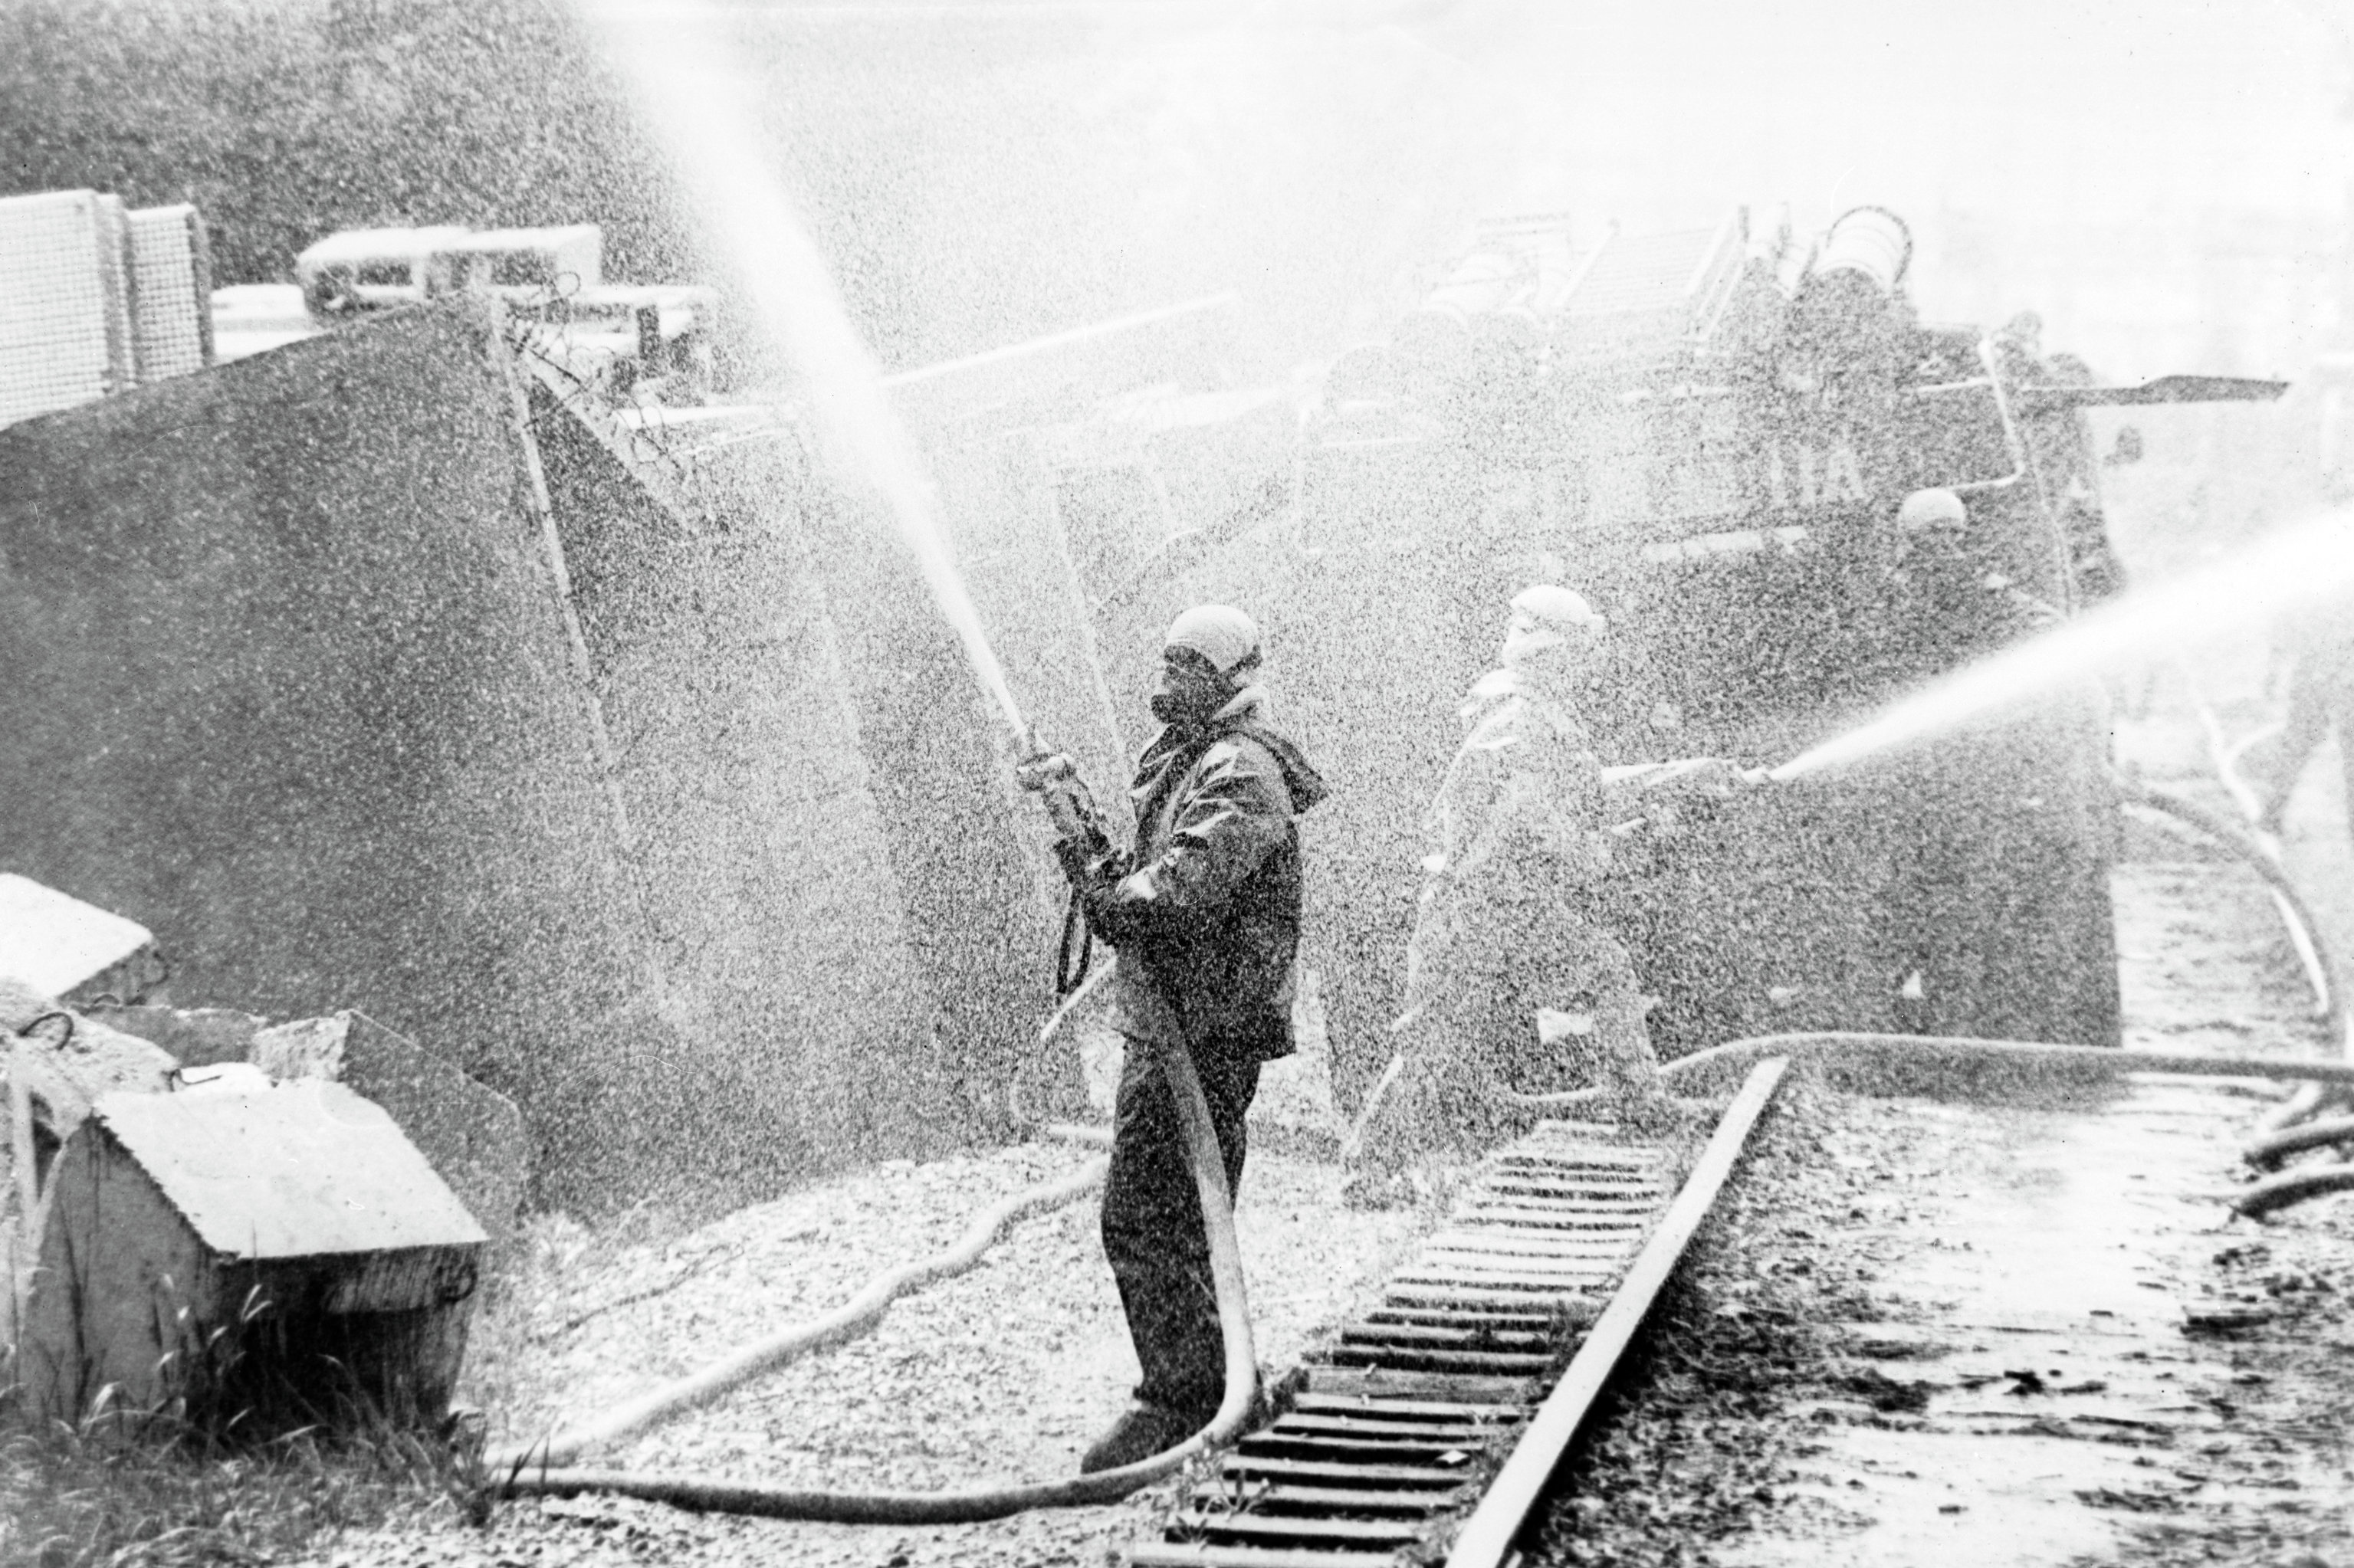 Decontamination on the Chernobyl Nuclear Plant site